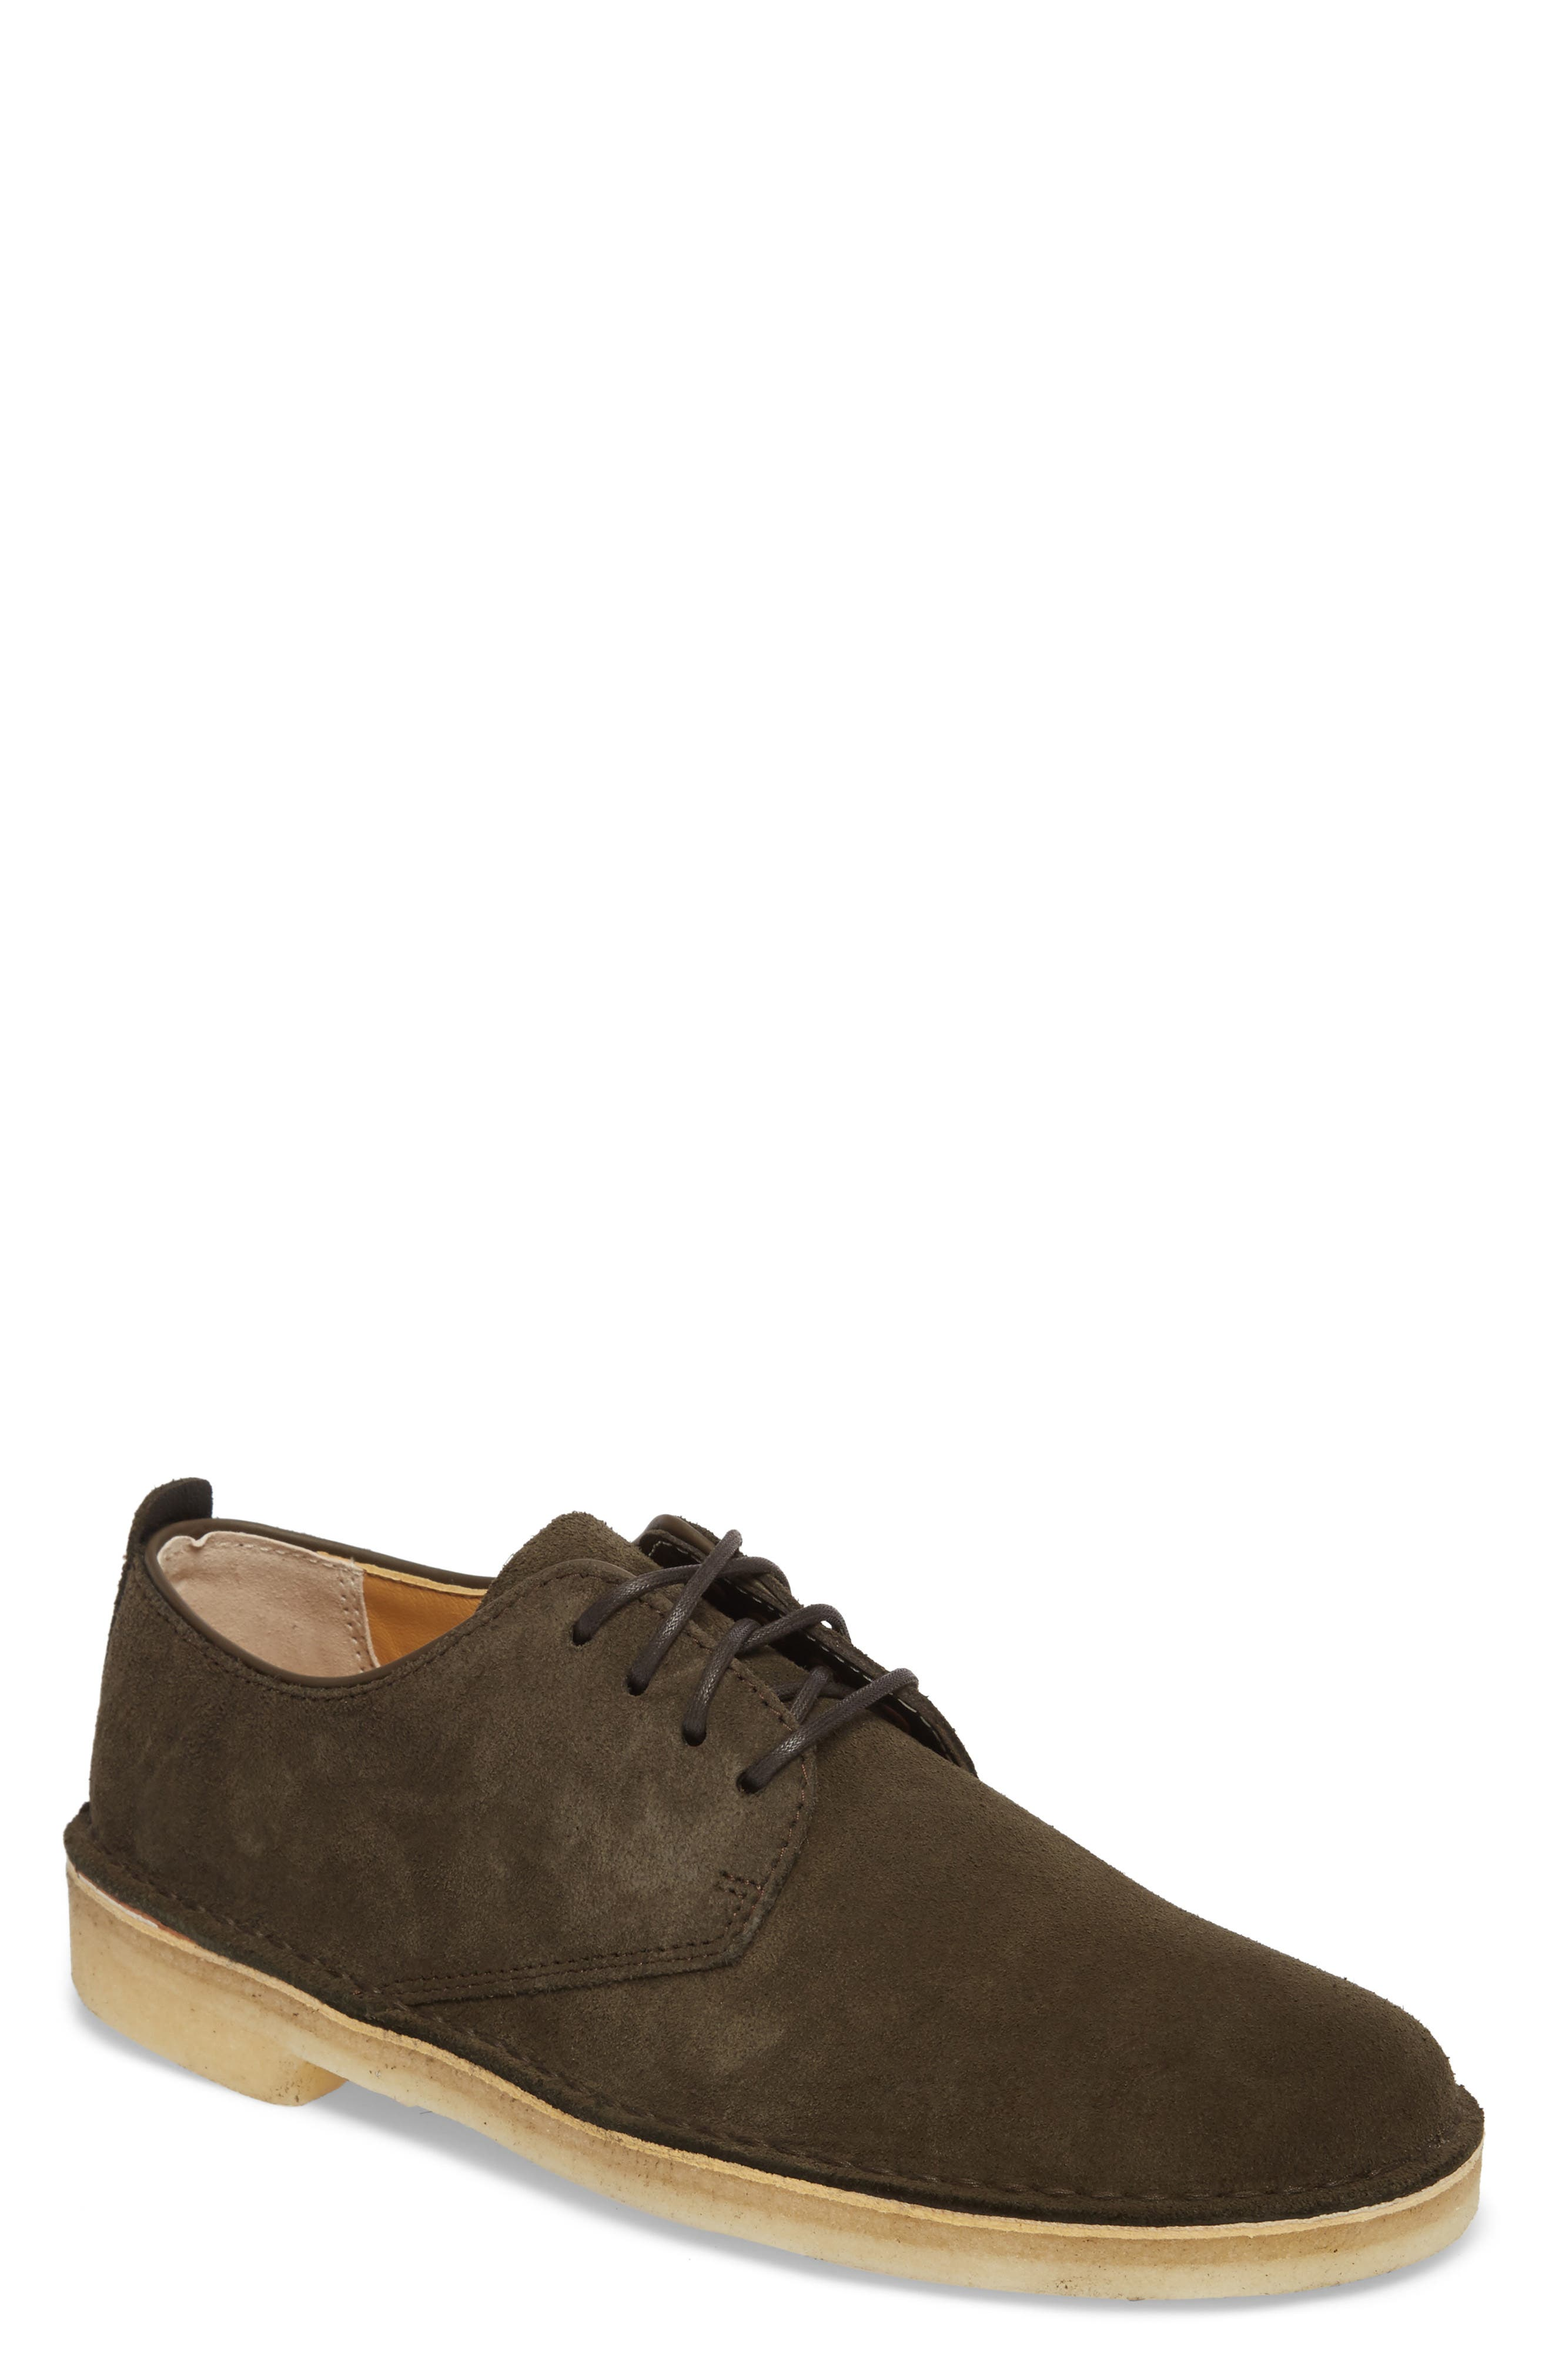 Desert London Suede Plain Toe Derby,                             Main thumbnail 1, color,                             Peat Suede